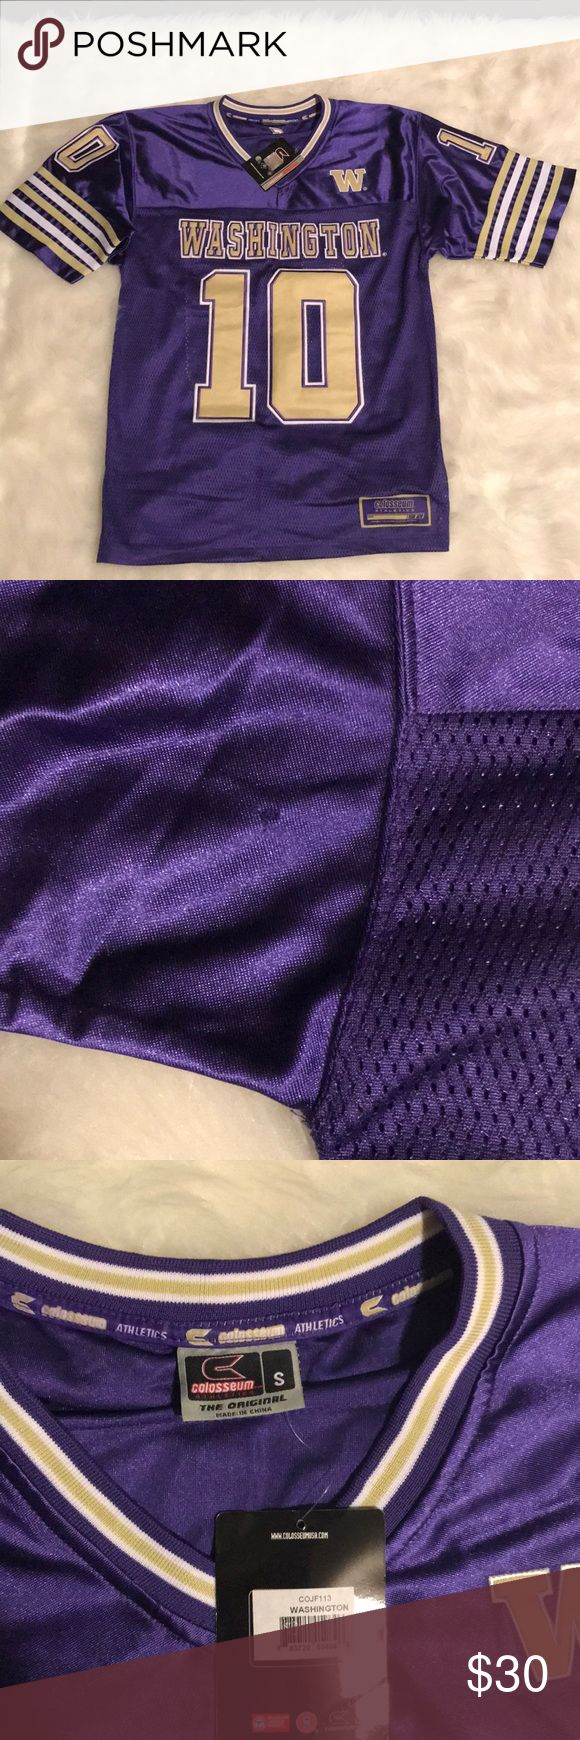 NWT UW Huskies Football Jersey S Brand new university of Washington huskies football jersey, #10. Never worn, but there is a tiny hole in the left sleeve, please see photo. This jersey must be unisex, because it fits LARGE! Tops Tees - Short Sleeve